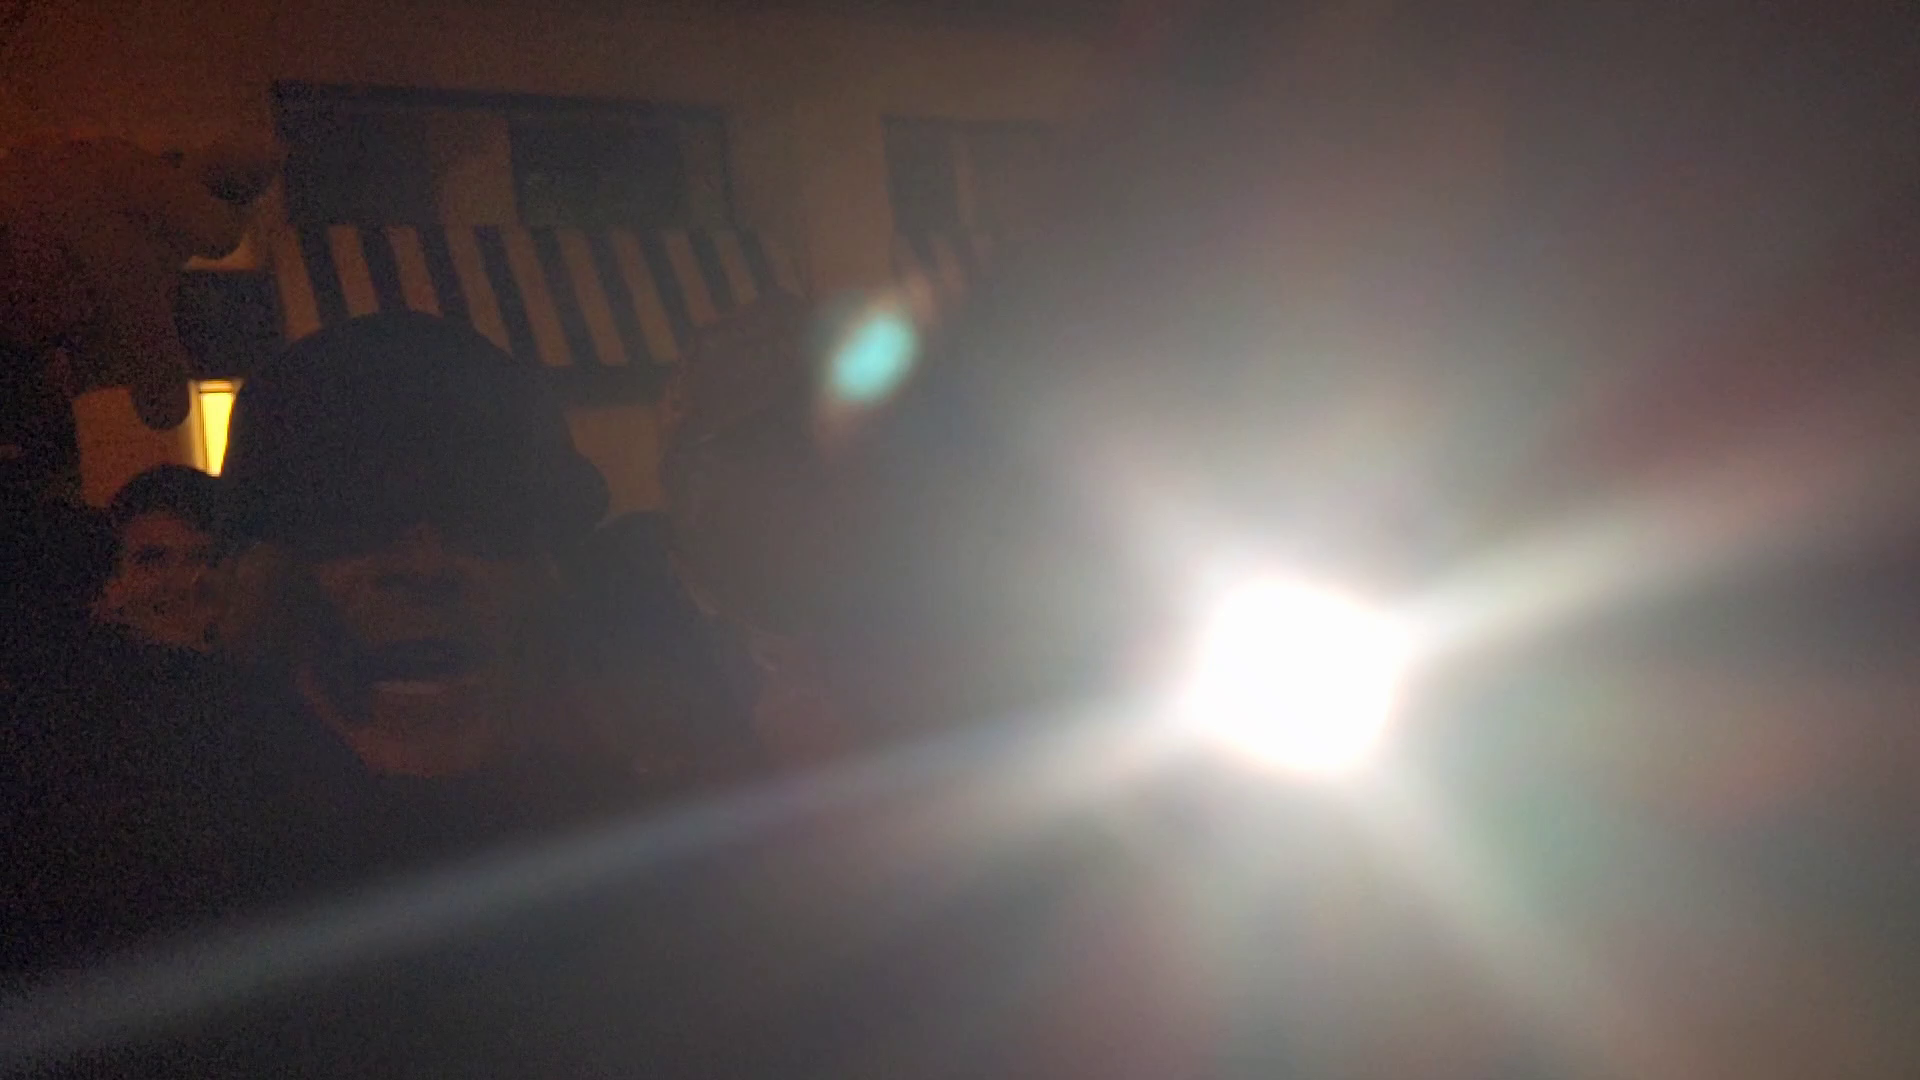 A bright light shines into the camera. In the dark background, a screaming man in a baseball cap is barely visible